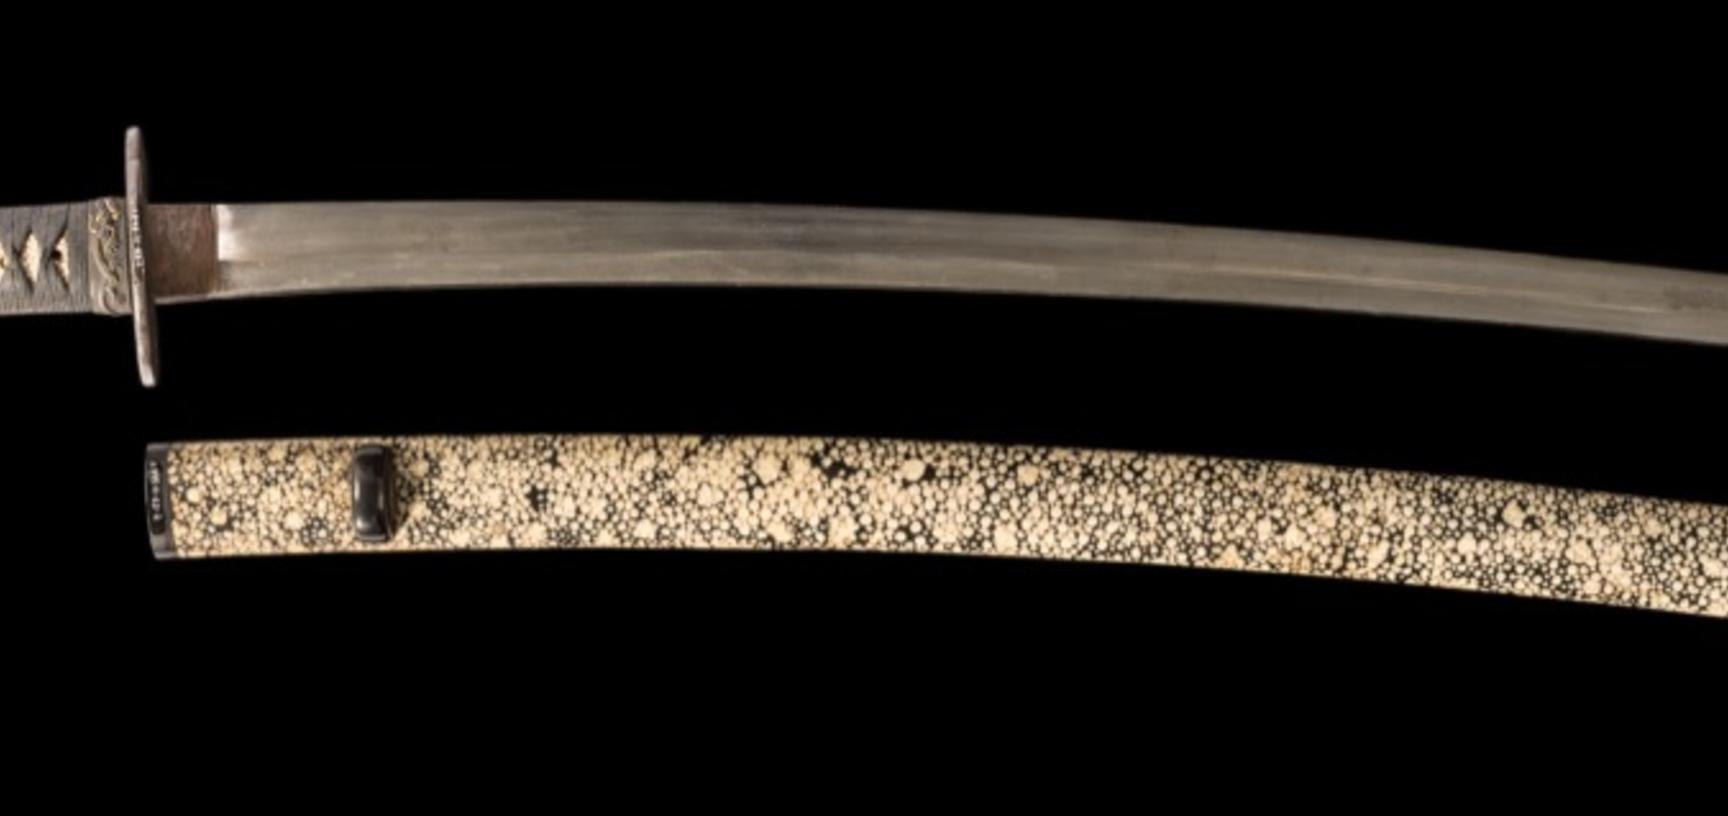 This katana, or long sword, nearly a metre in length, has at some point in its history been shortened (by removing part of the tang, including some of the signature). Certain features of the blade, however, suggest that it was made by a (lesser) smith of